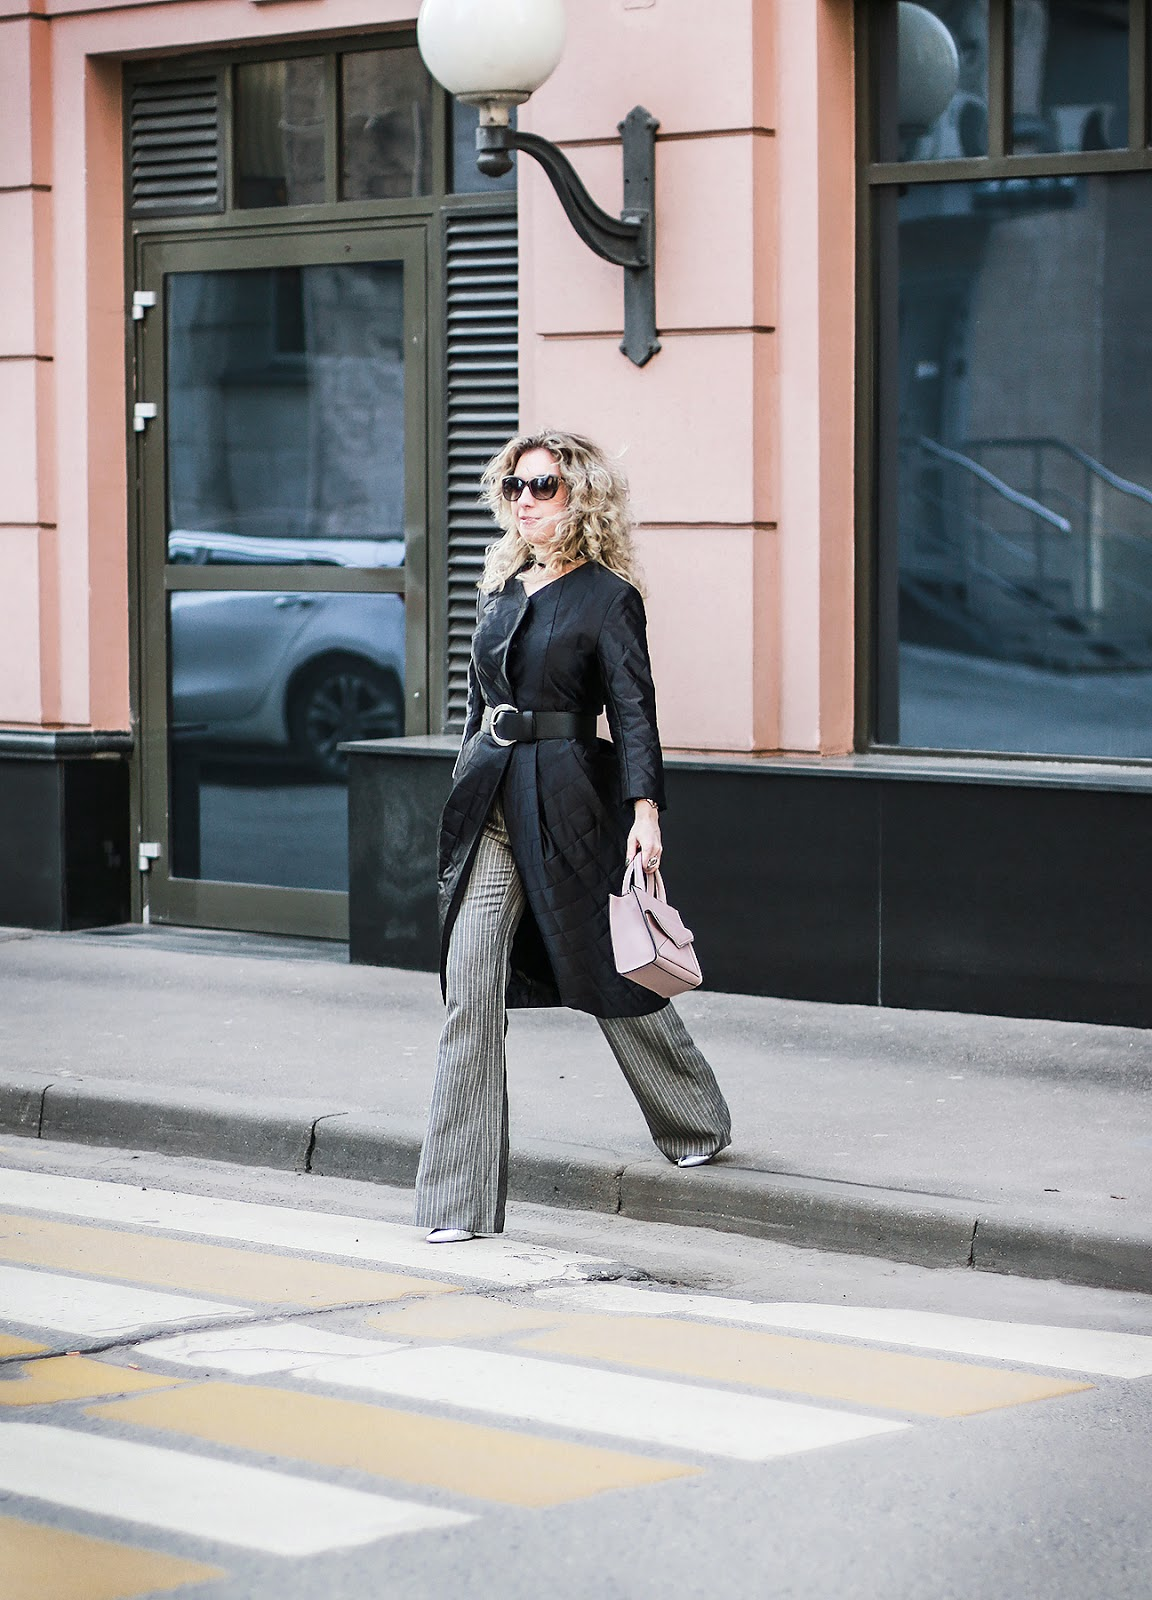 Margarita_Maslova_Ritalifestyle_Fashion_blogger_Moscow_belt_coat_black_silver_shoes_outfitMargarita_Maslova_Ritalifestyle_Fashion_blogger_Moscow_belt_coat_black_silver_shoes_outfit